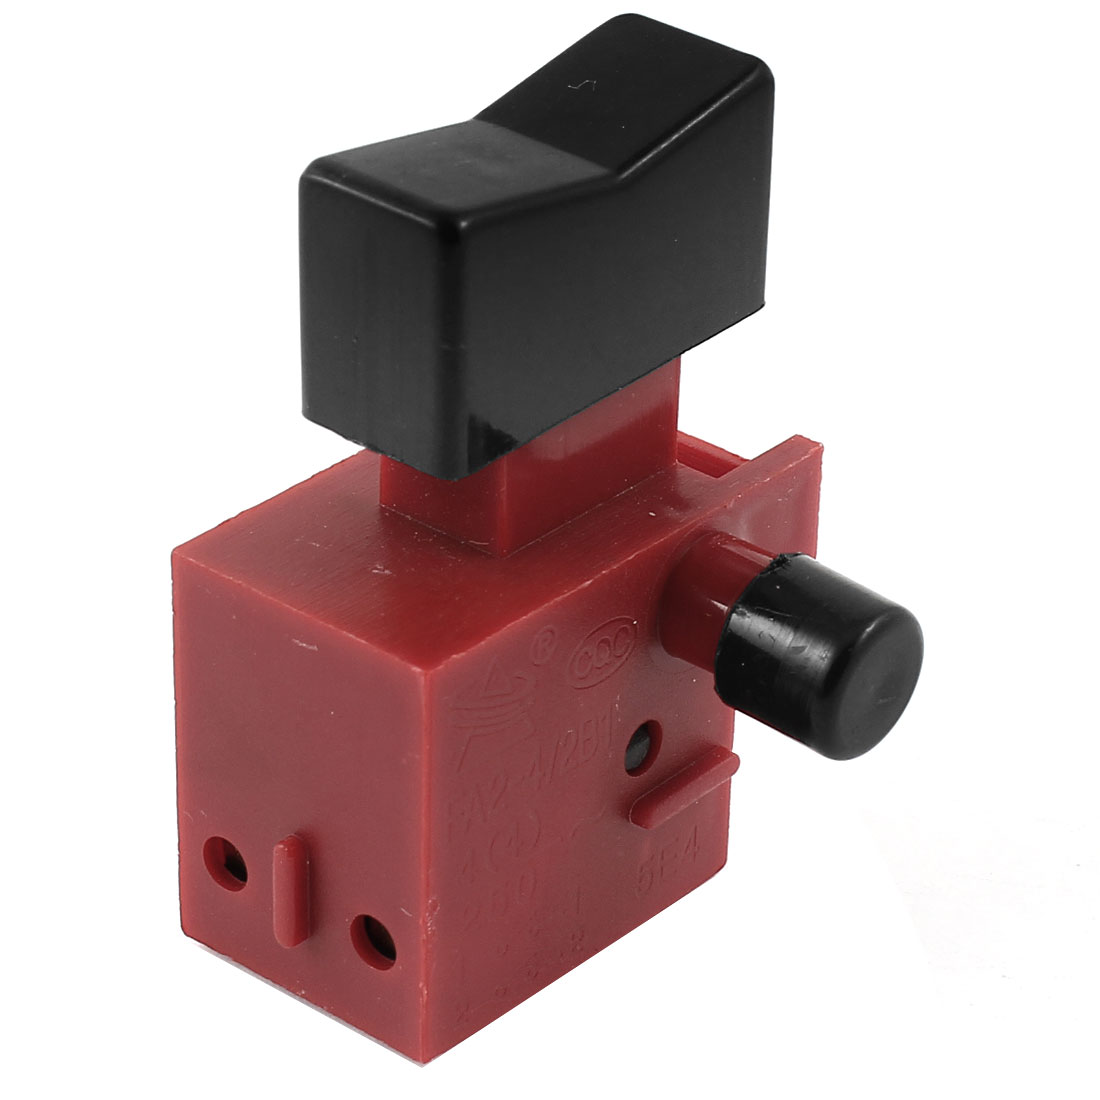 AC 250V 4A NO Momentary Select Locking Electric Tool Trigger Switch